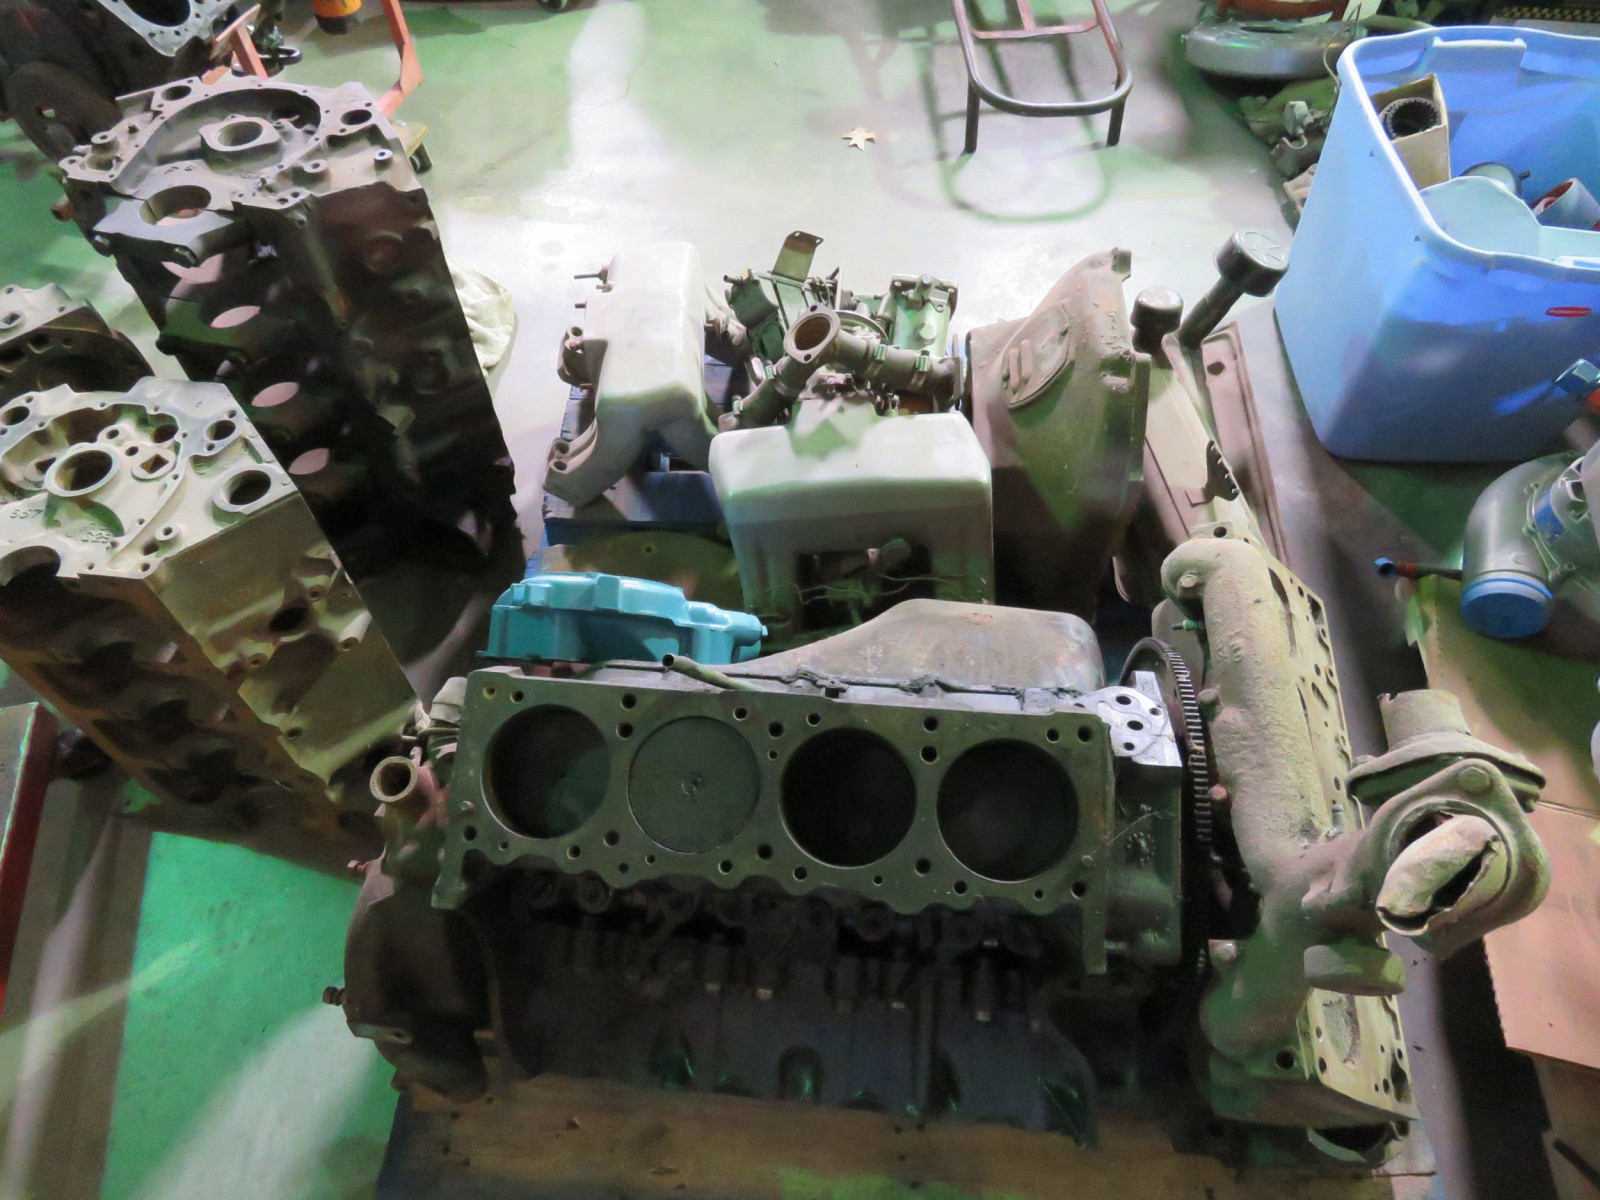 1958 Pontiac 258 370 CU Motor with Rare Fuel Injection Project - Image 4